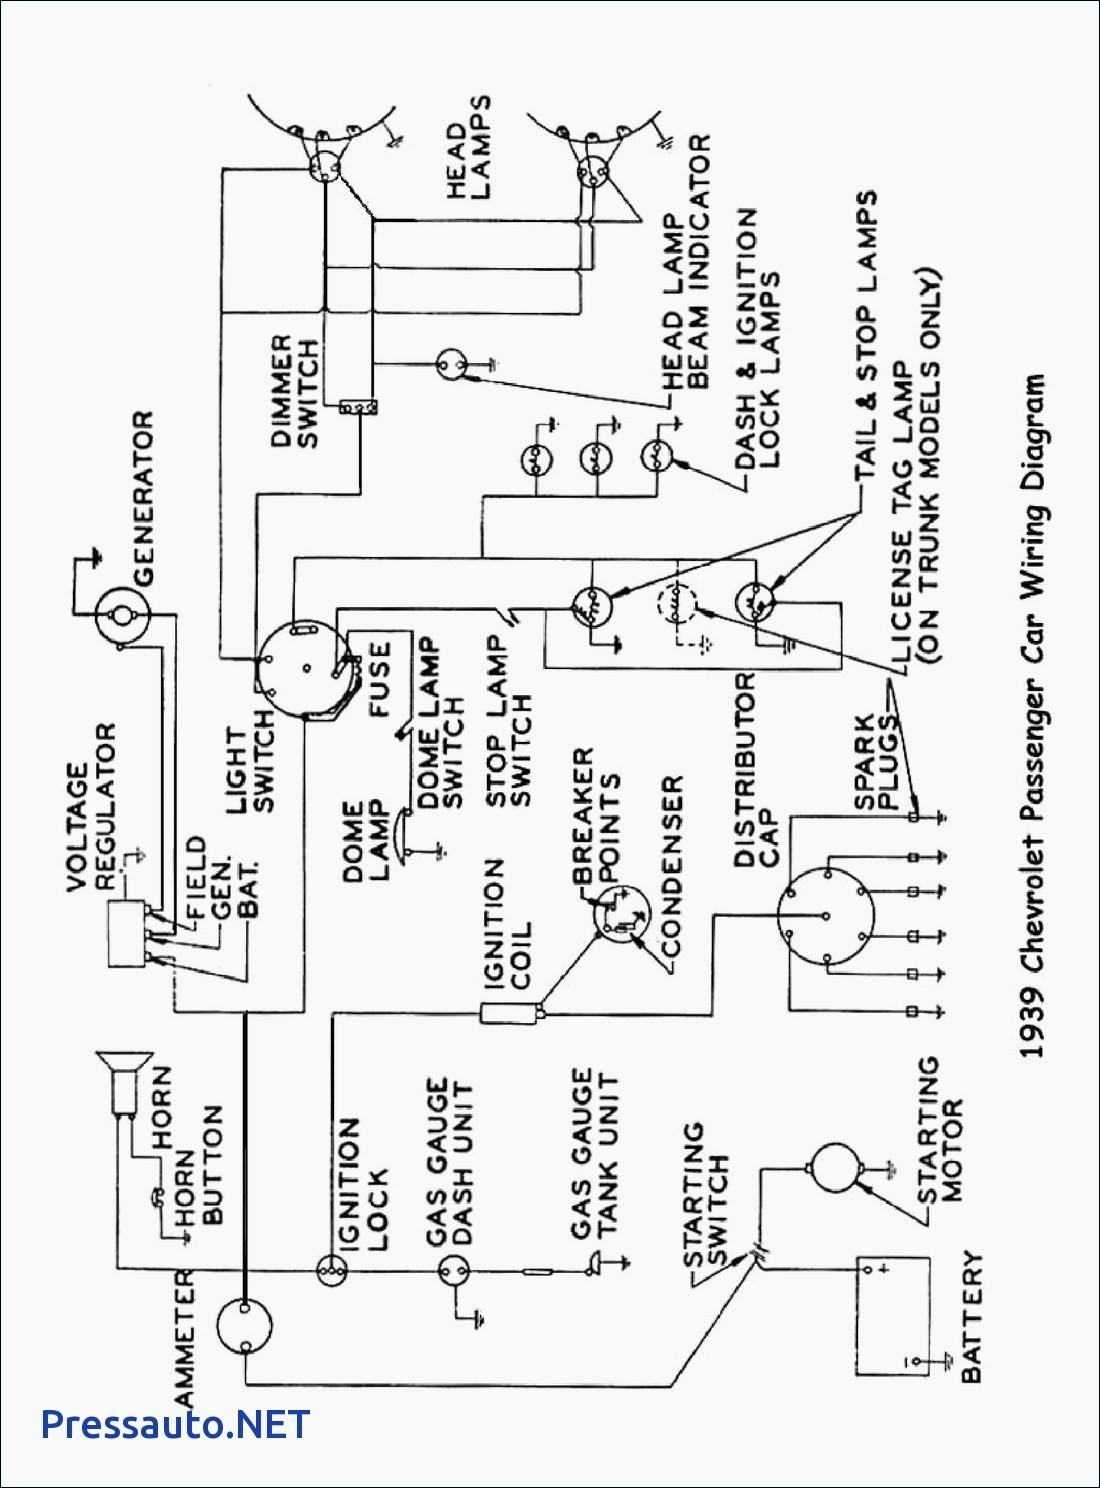 Wiring Diagram For A John Deere 4430